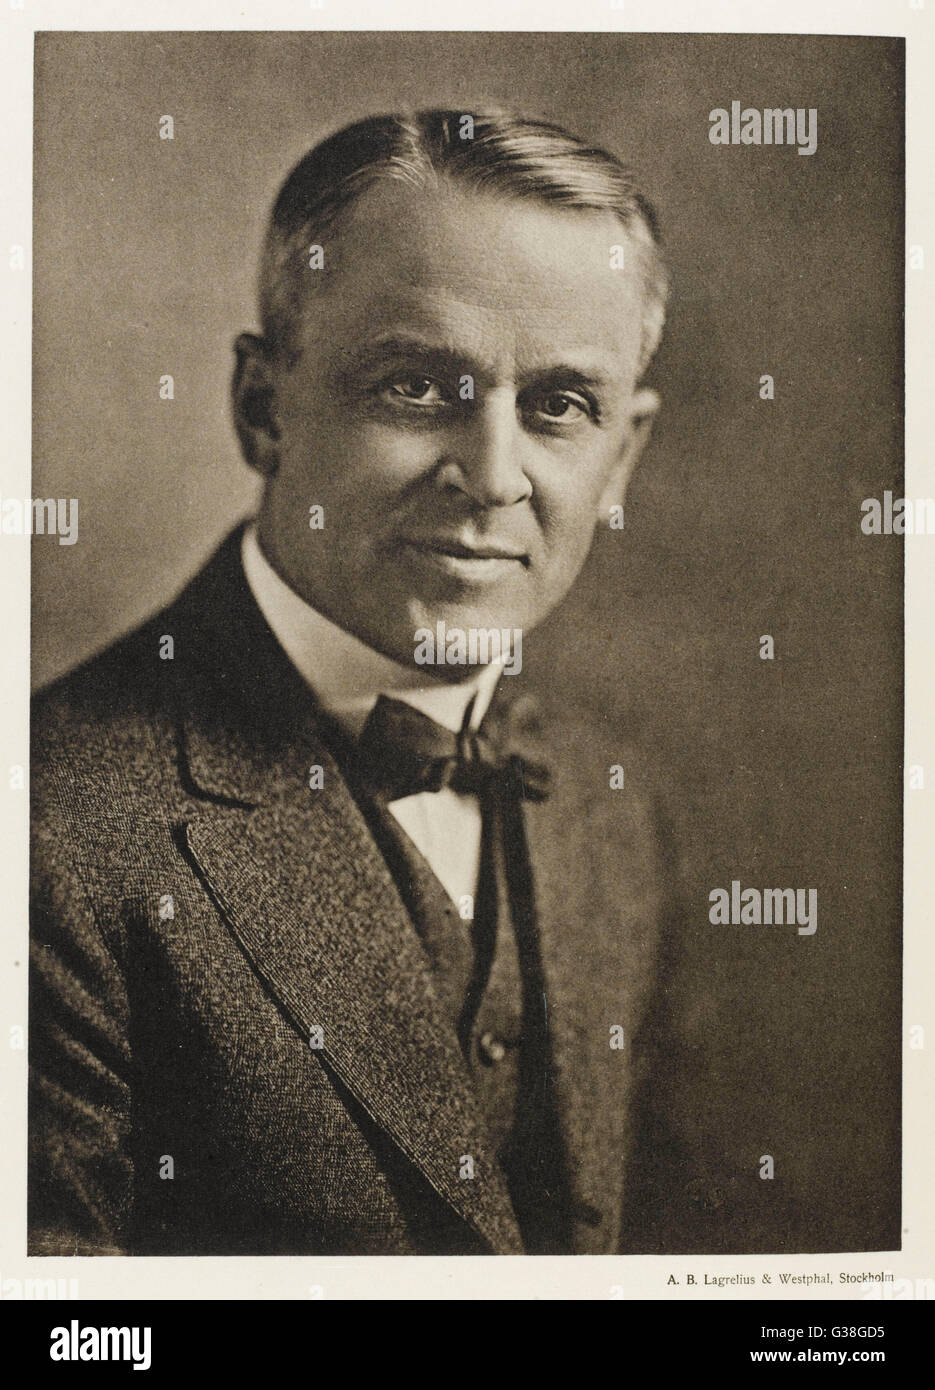 ROBERT MILLIKAN  American physicist        Date: 1868 - 1953 - Stock Image